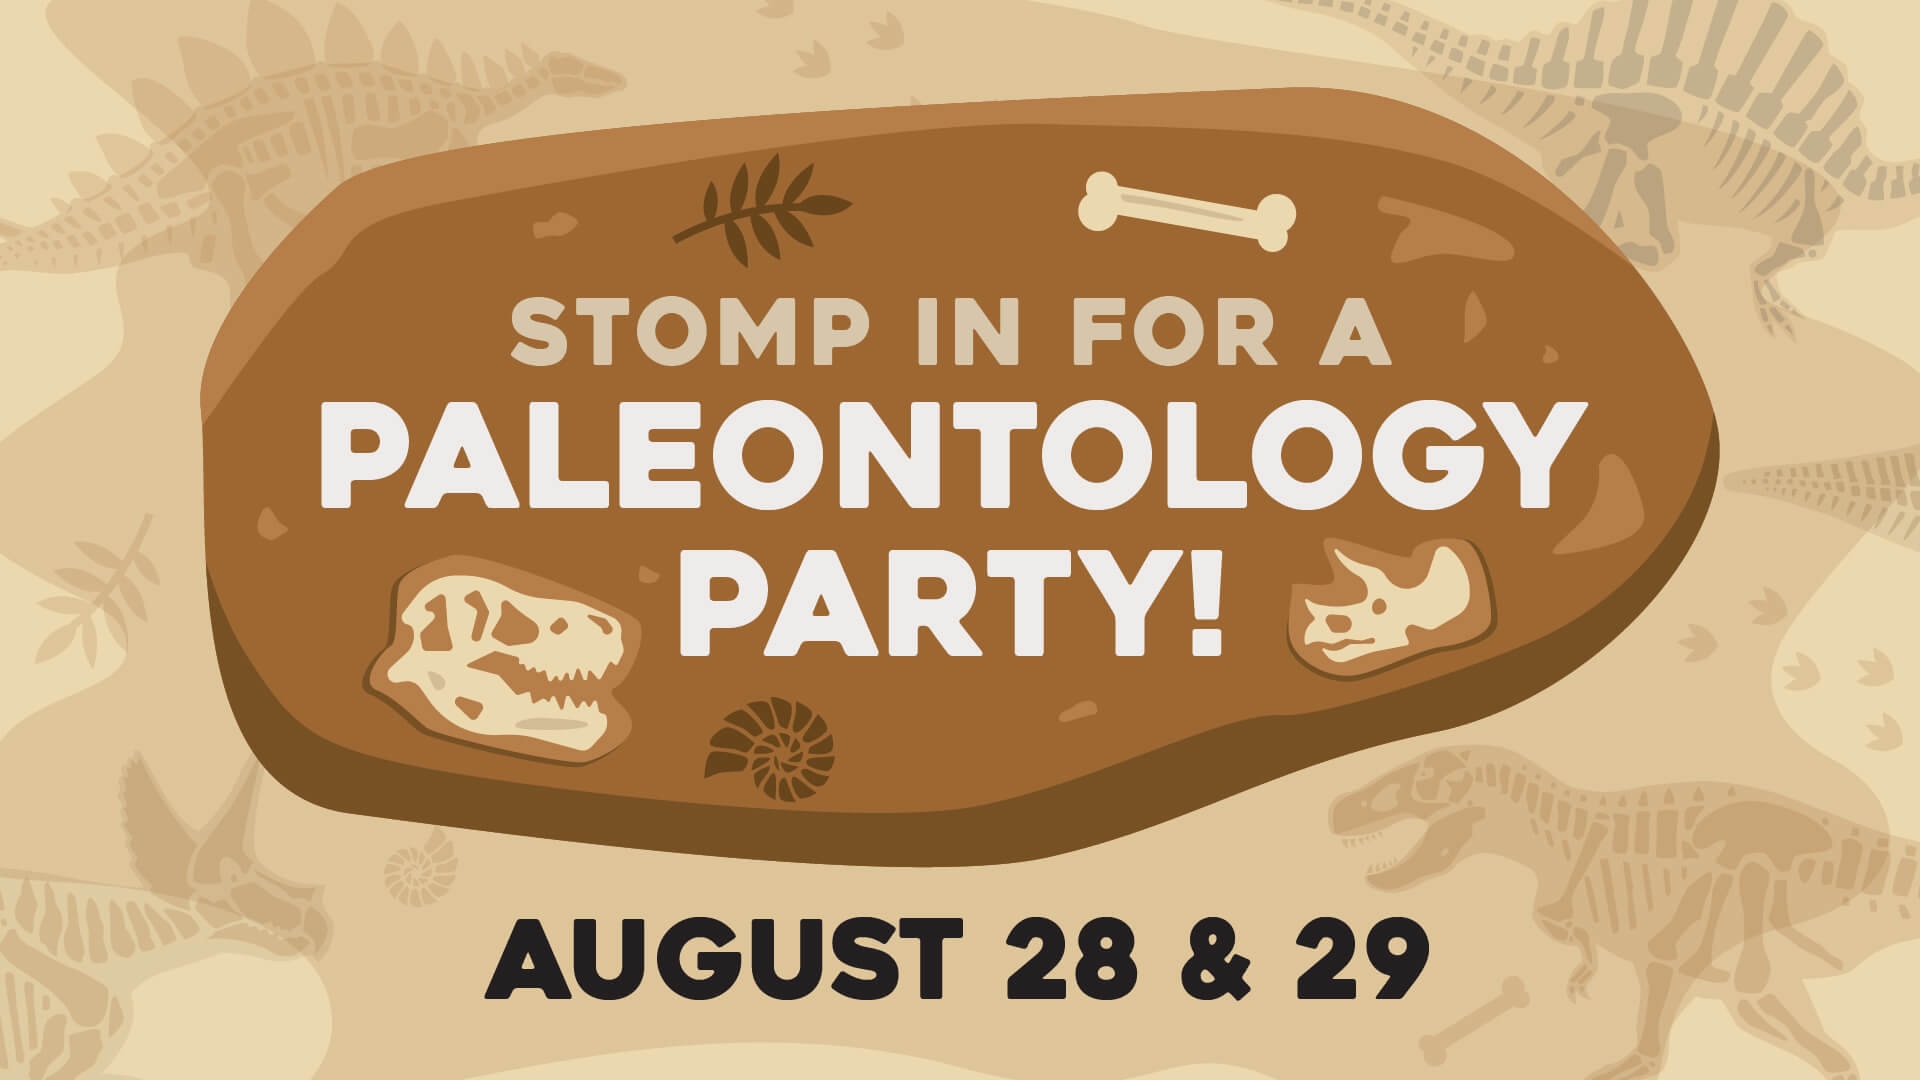 Stomp in for a Paleontology Party August 28 & 29